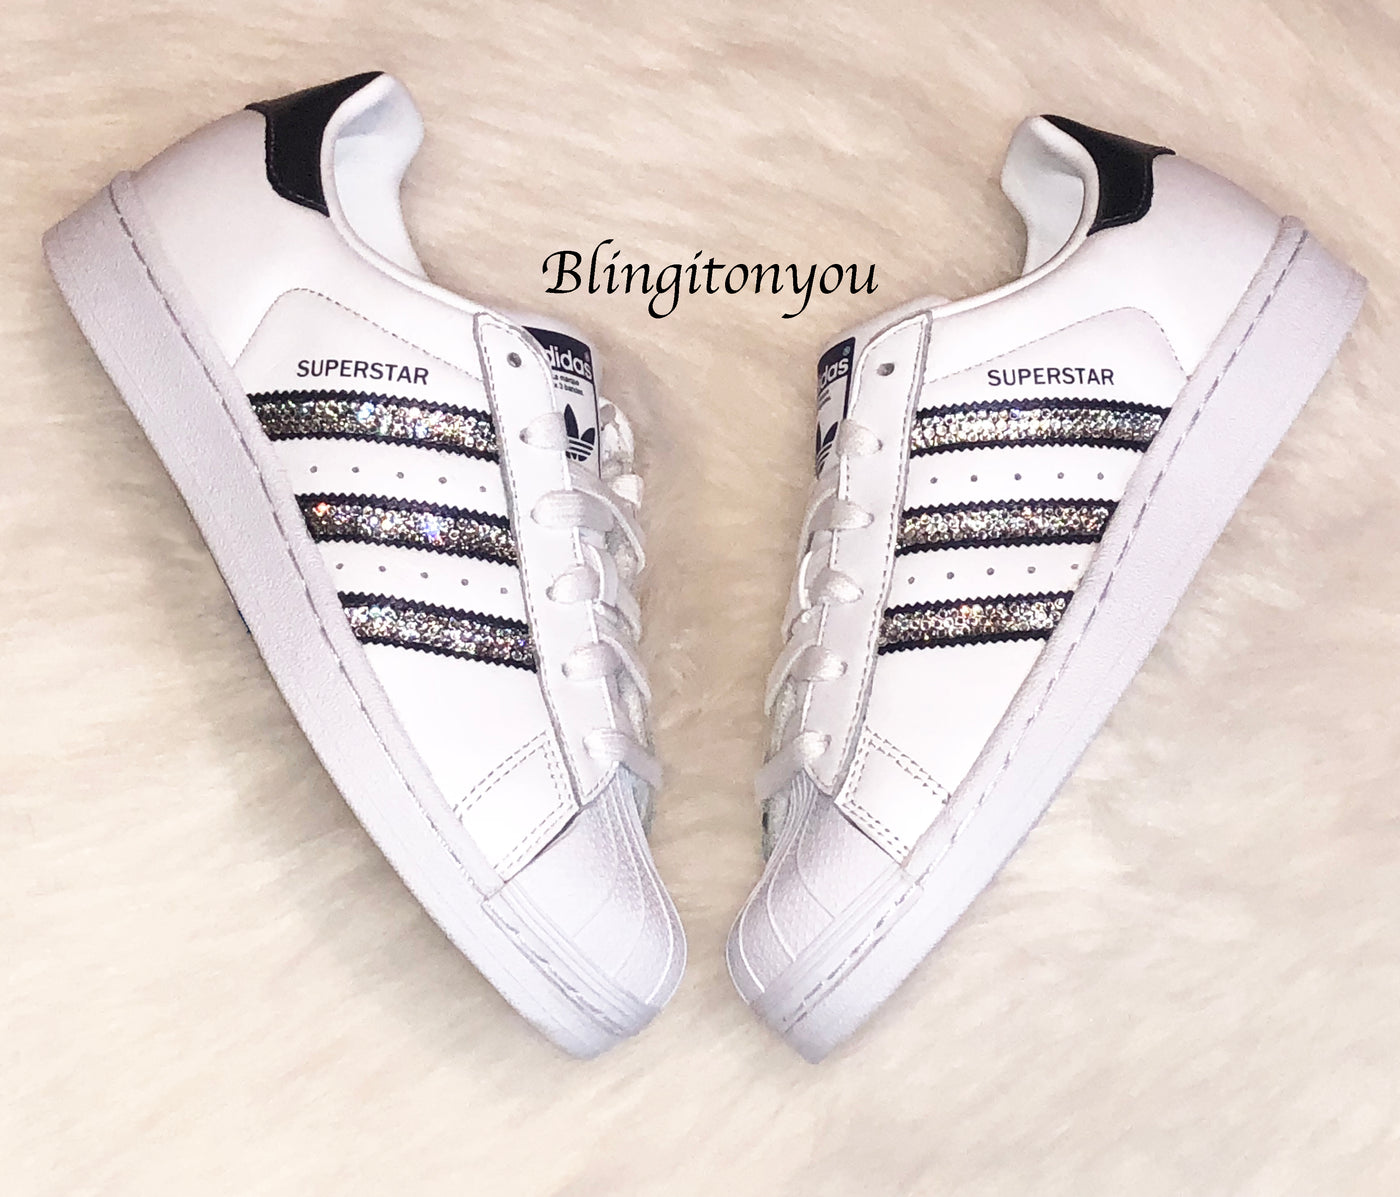 4a8d4bb1d9519 Bling Adidas Superstar with Swarovski Crystals   Women s Originals Sup –  Blingitonyou